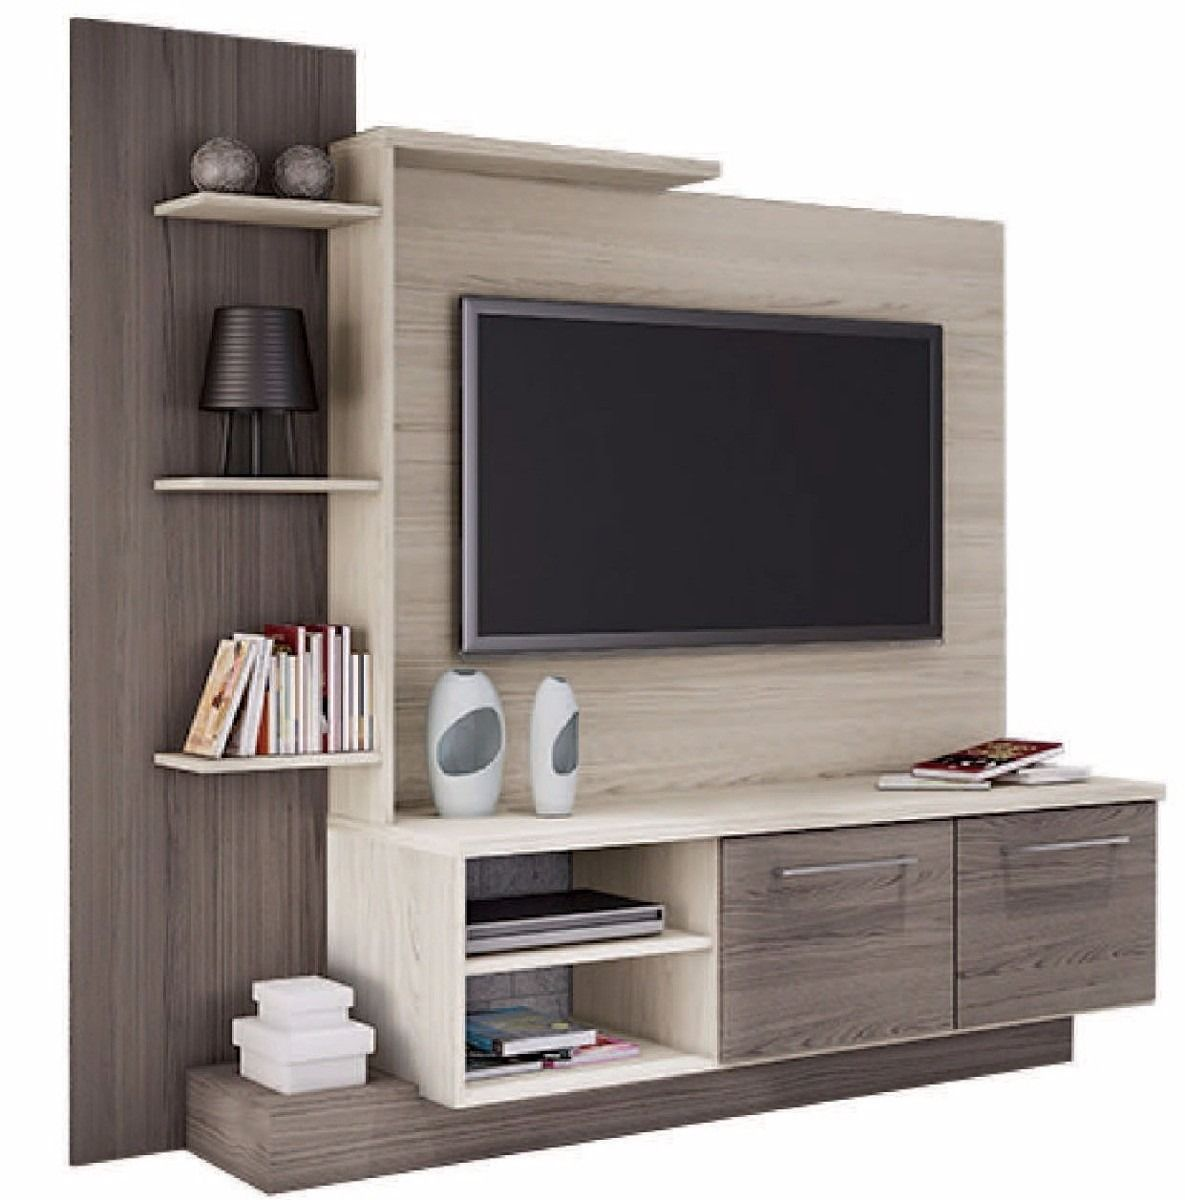 rack mesa tv led lcd mueble de comedor modular home theater muebles pinterest. Black Bedroom Furniture Sets. Home Design Ideas